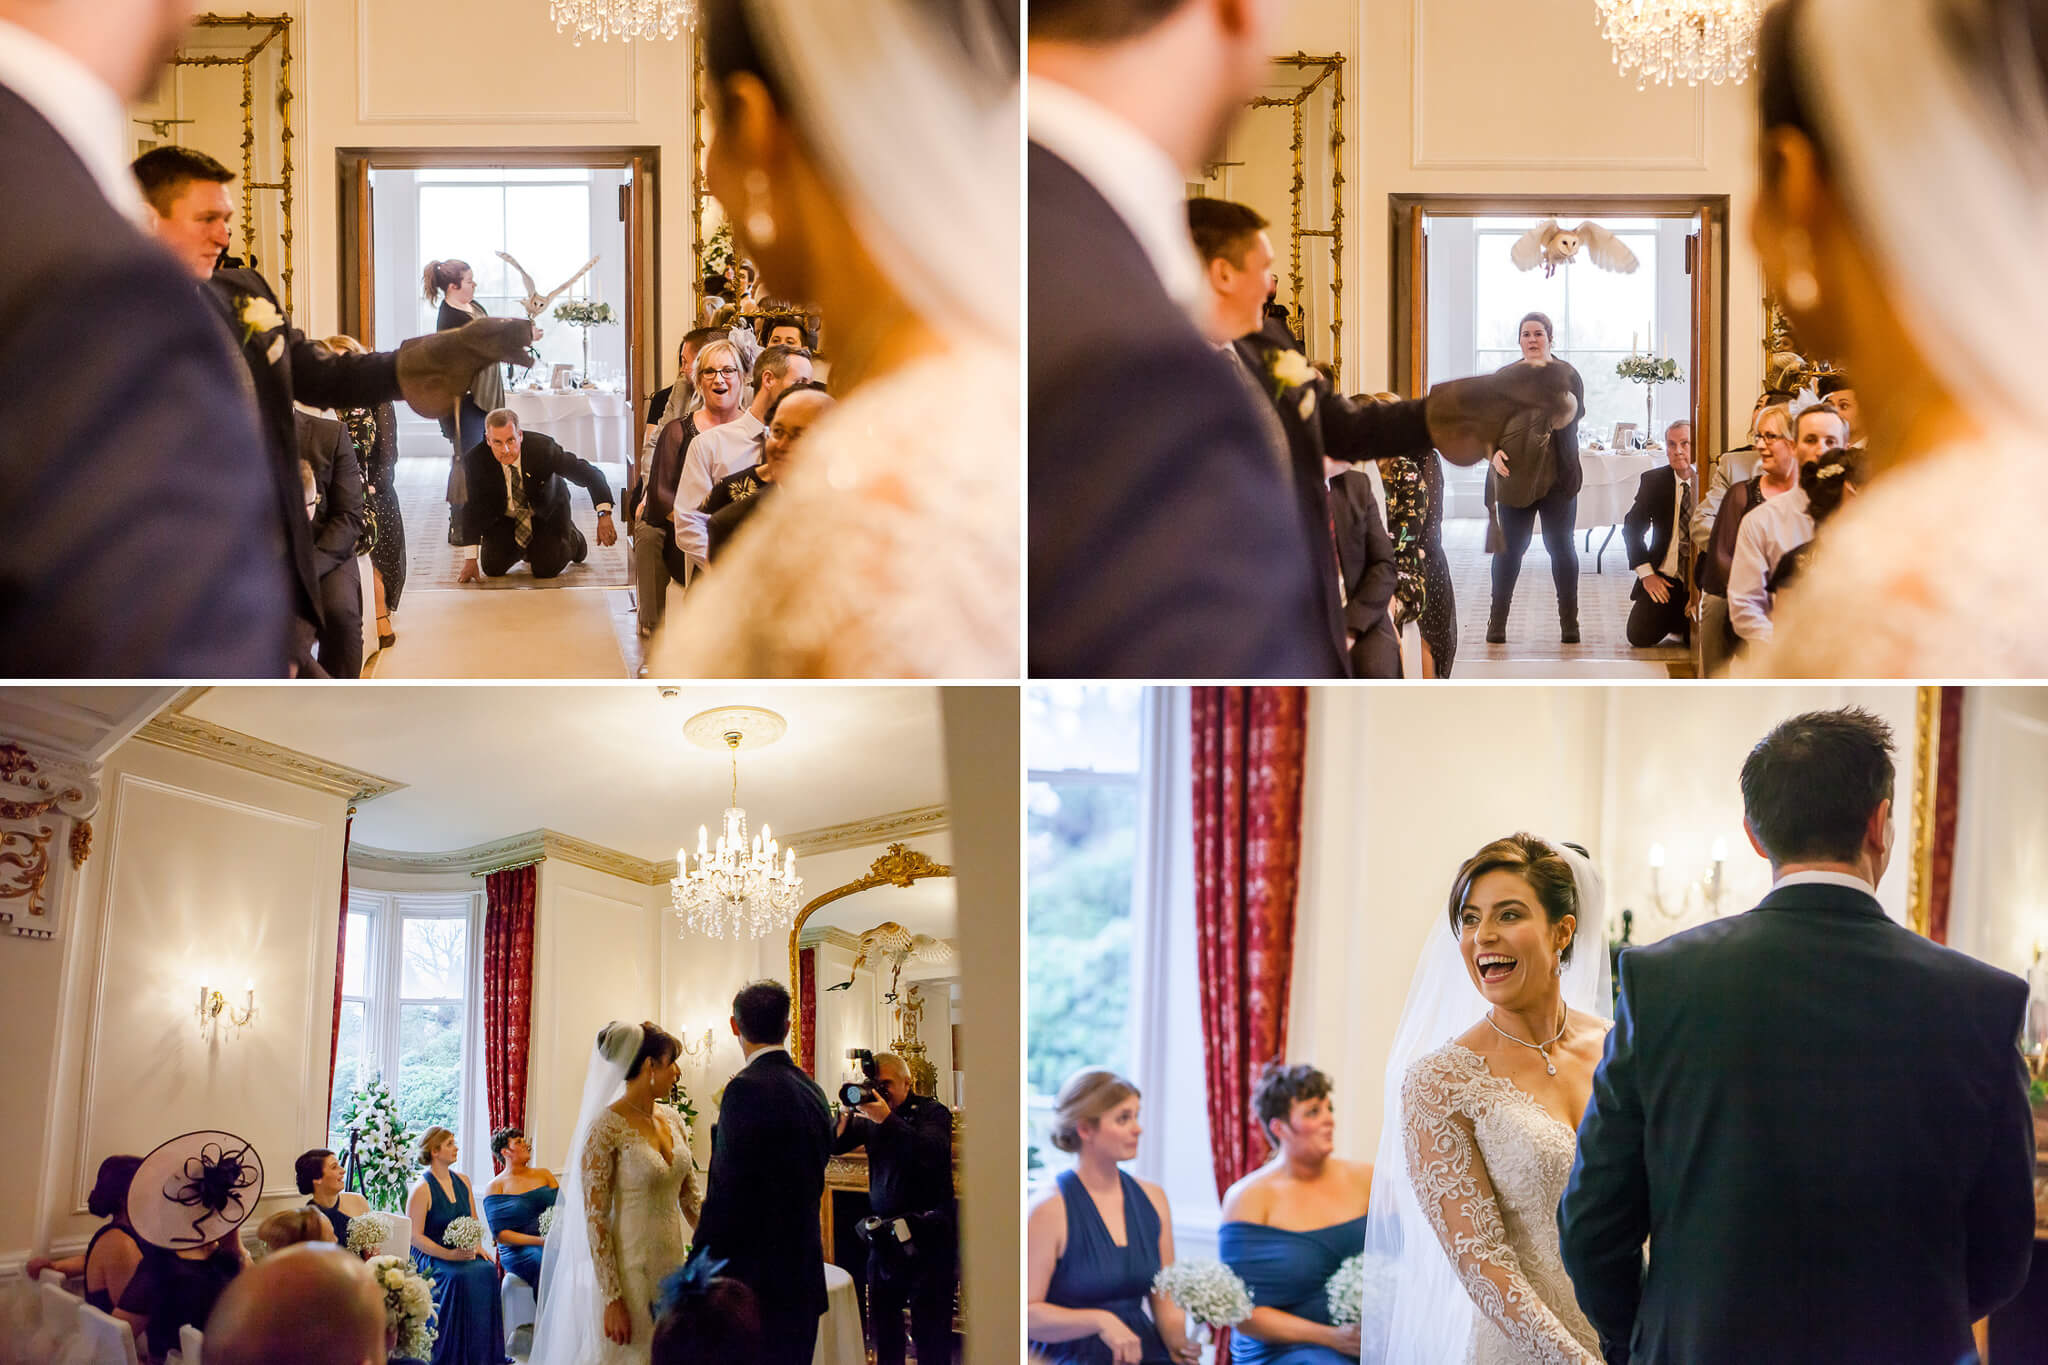 wedding-photographer-auchen-castle-scotland-stanbury-photography